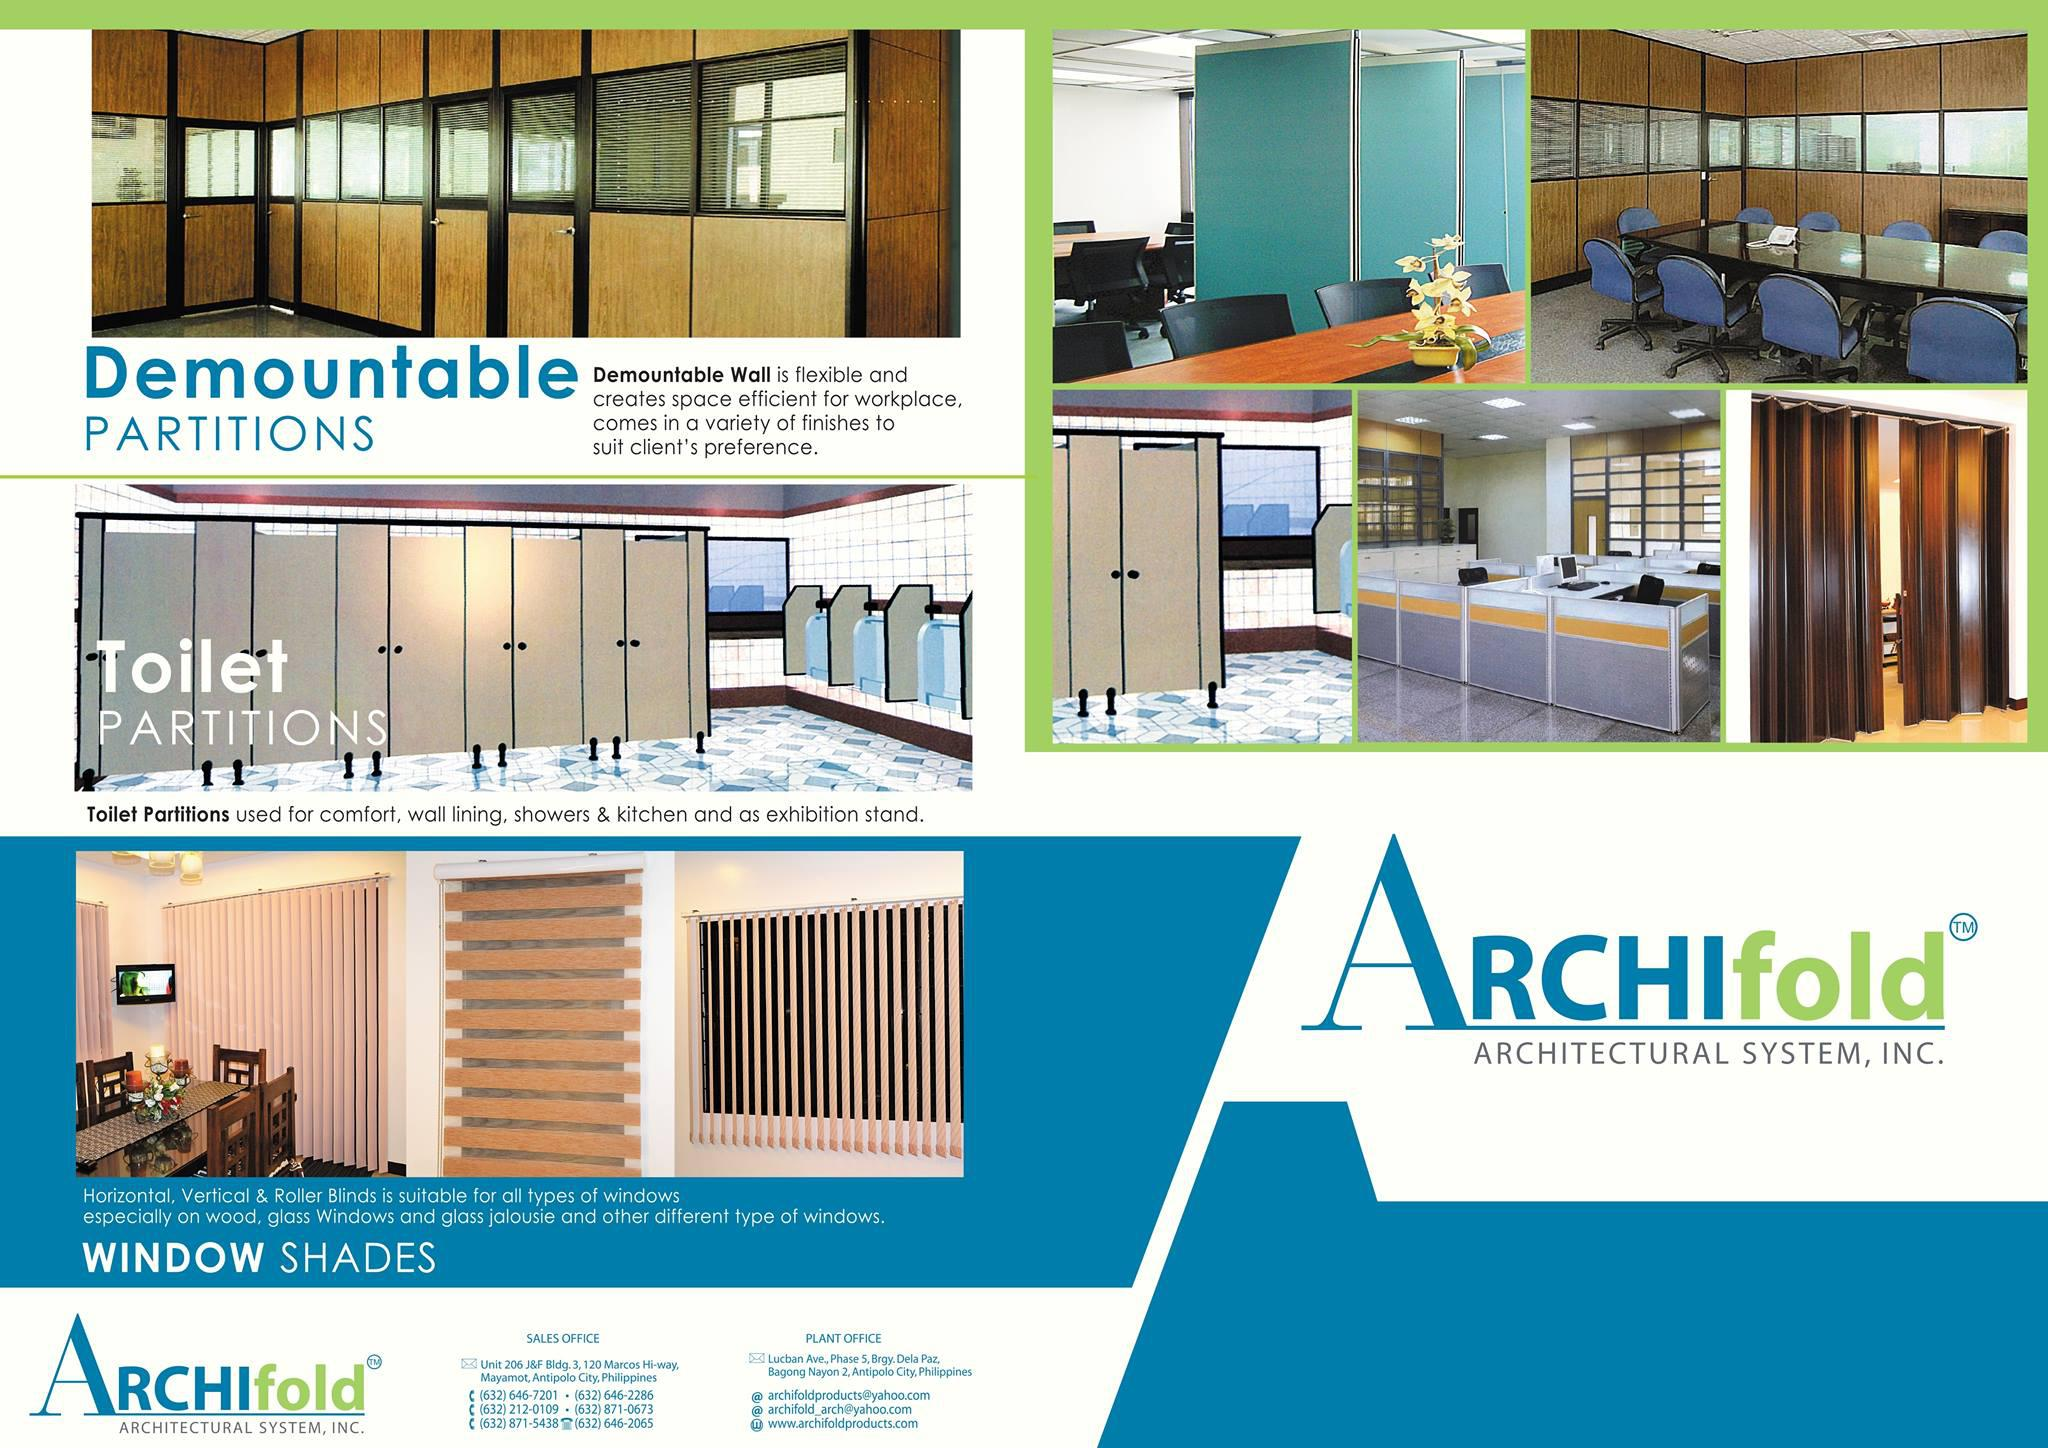 Archifold Architectural System, Inc. Logo